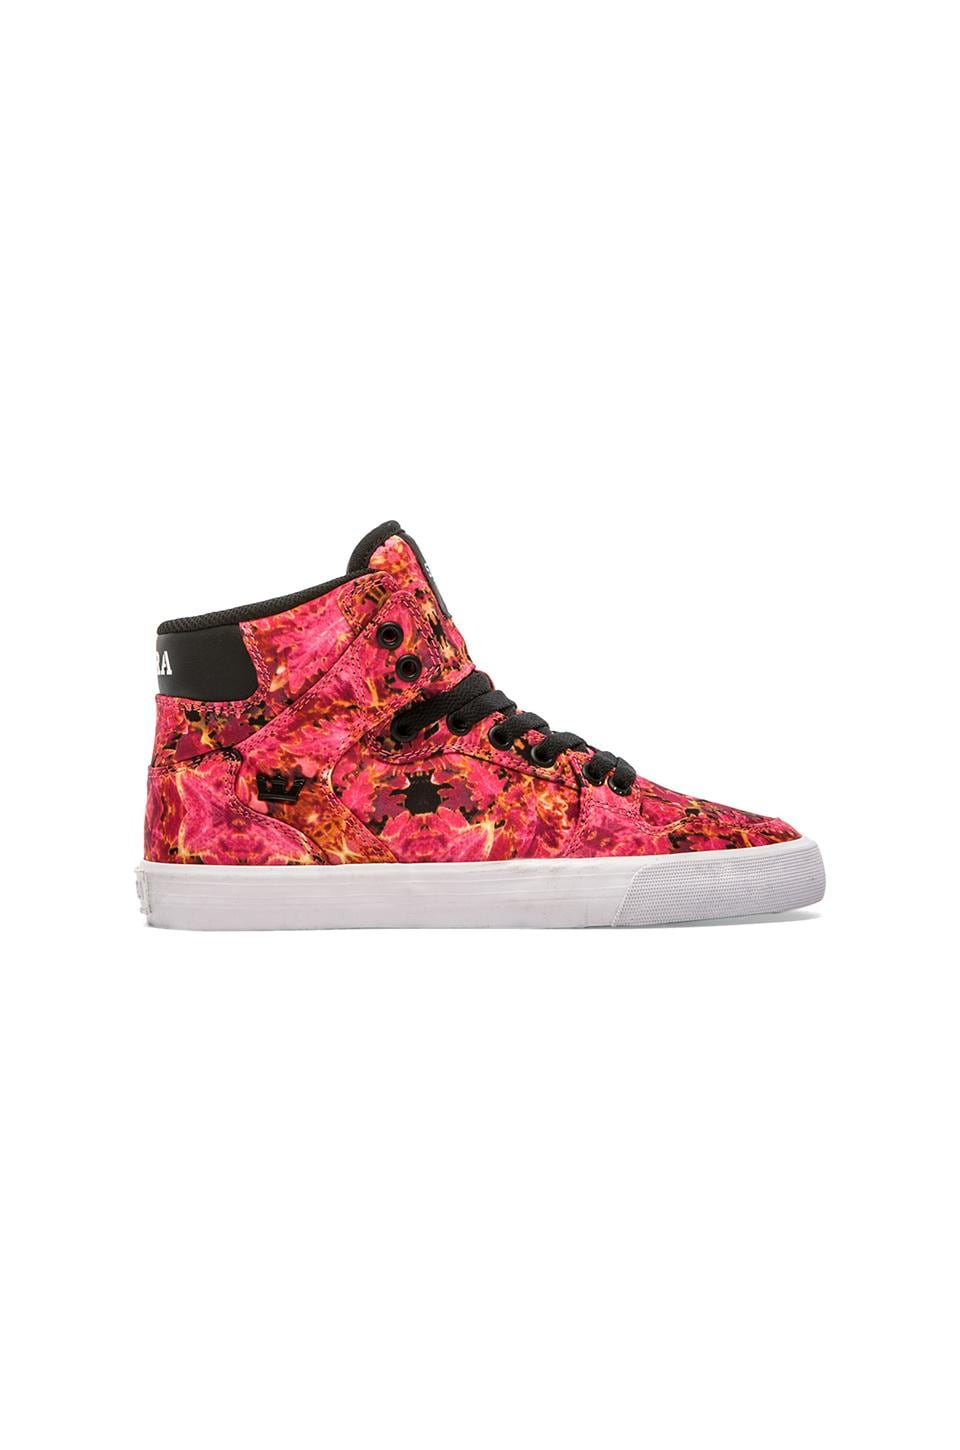 Supra Vaider High Top Sneaker in Pink Orchid